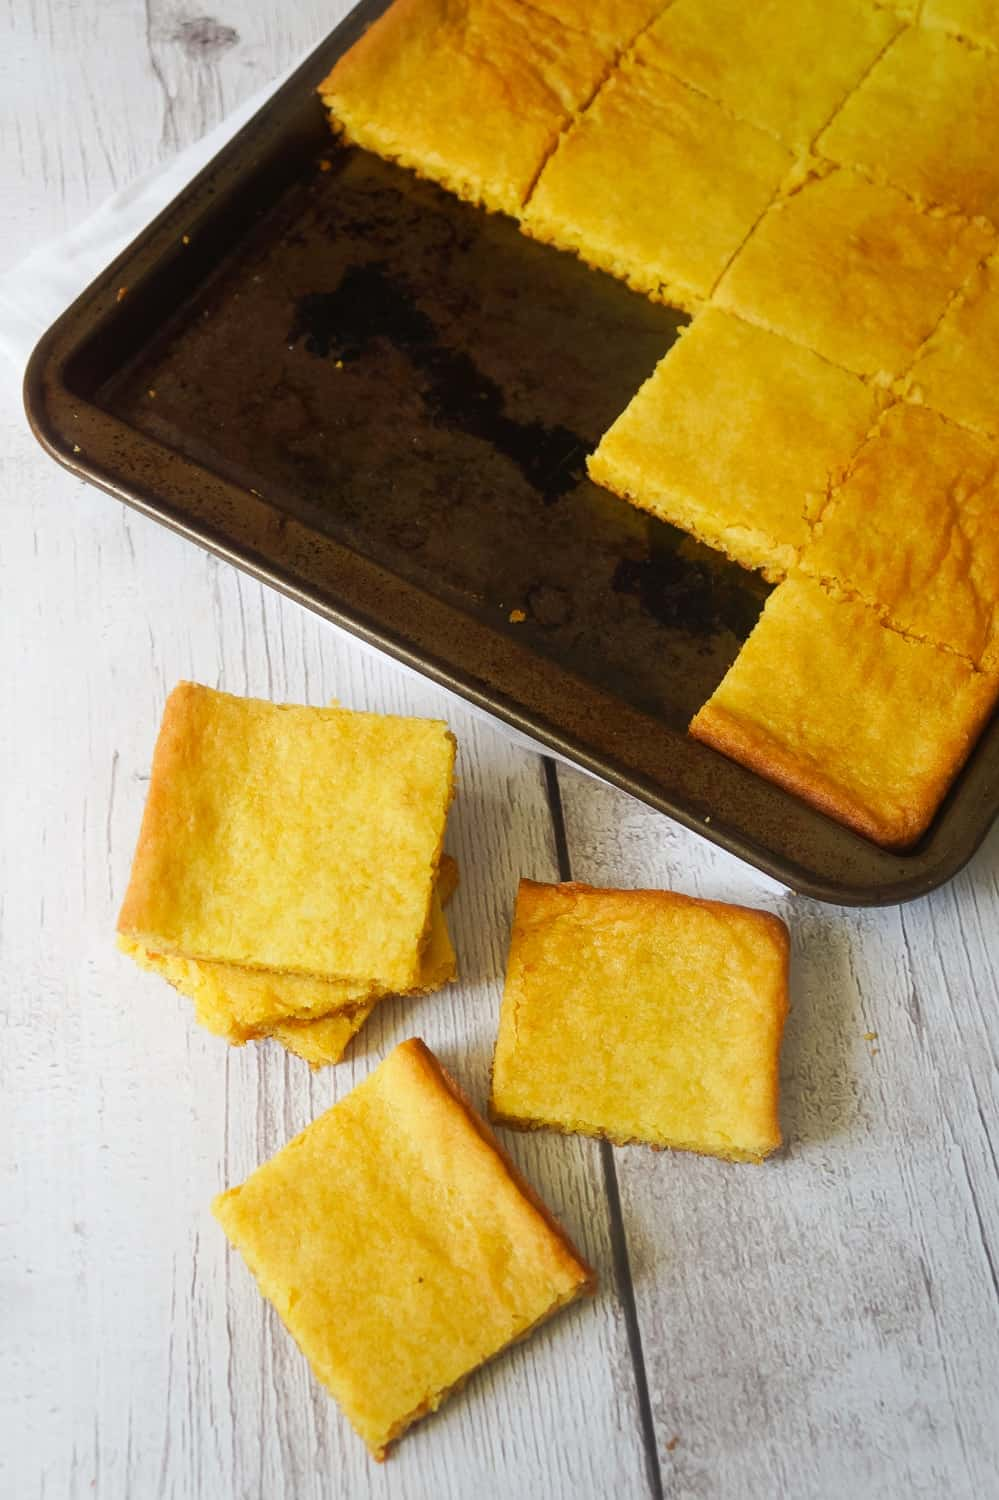 Lemon Pudding Sugar Cookie Bars are an easy 4 ingredient dessert recipe. These soft, chewy cookie bars are made with Betty Crocker Sugar Cookie Mix and lemon instant pudding.